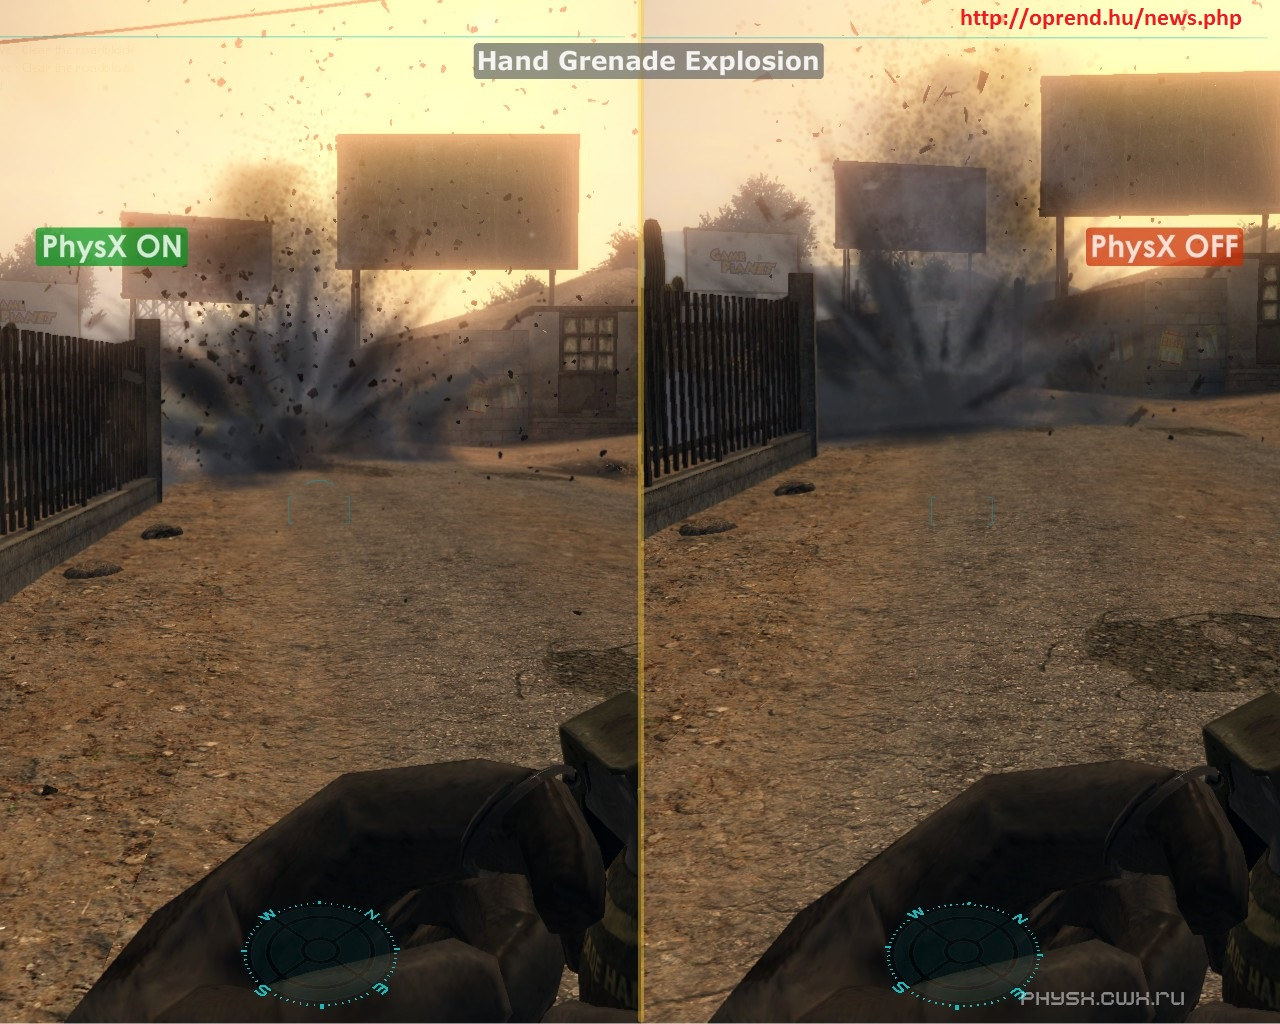 oprend.hu/infusions/downloads/images/screenshots/physx_in_ghost_recon_advanced_warfighter_2-kp1.jpg